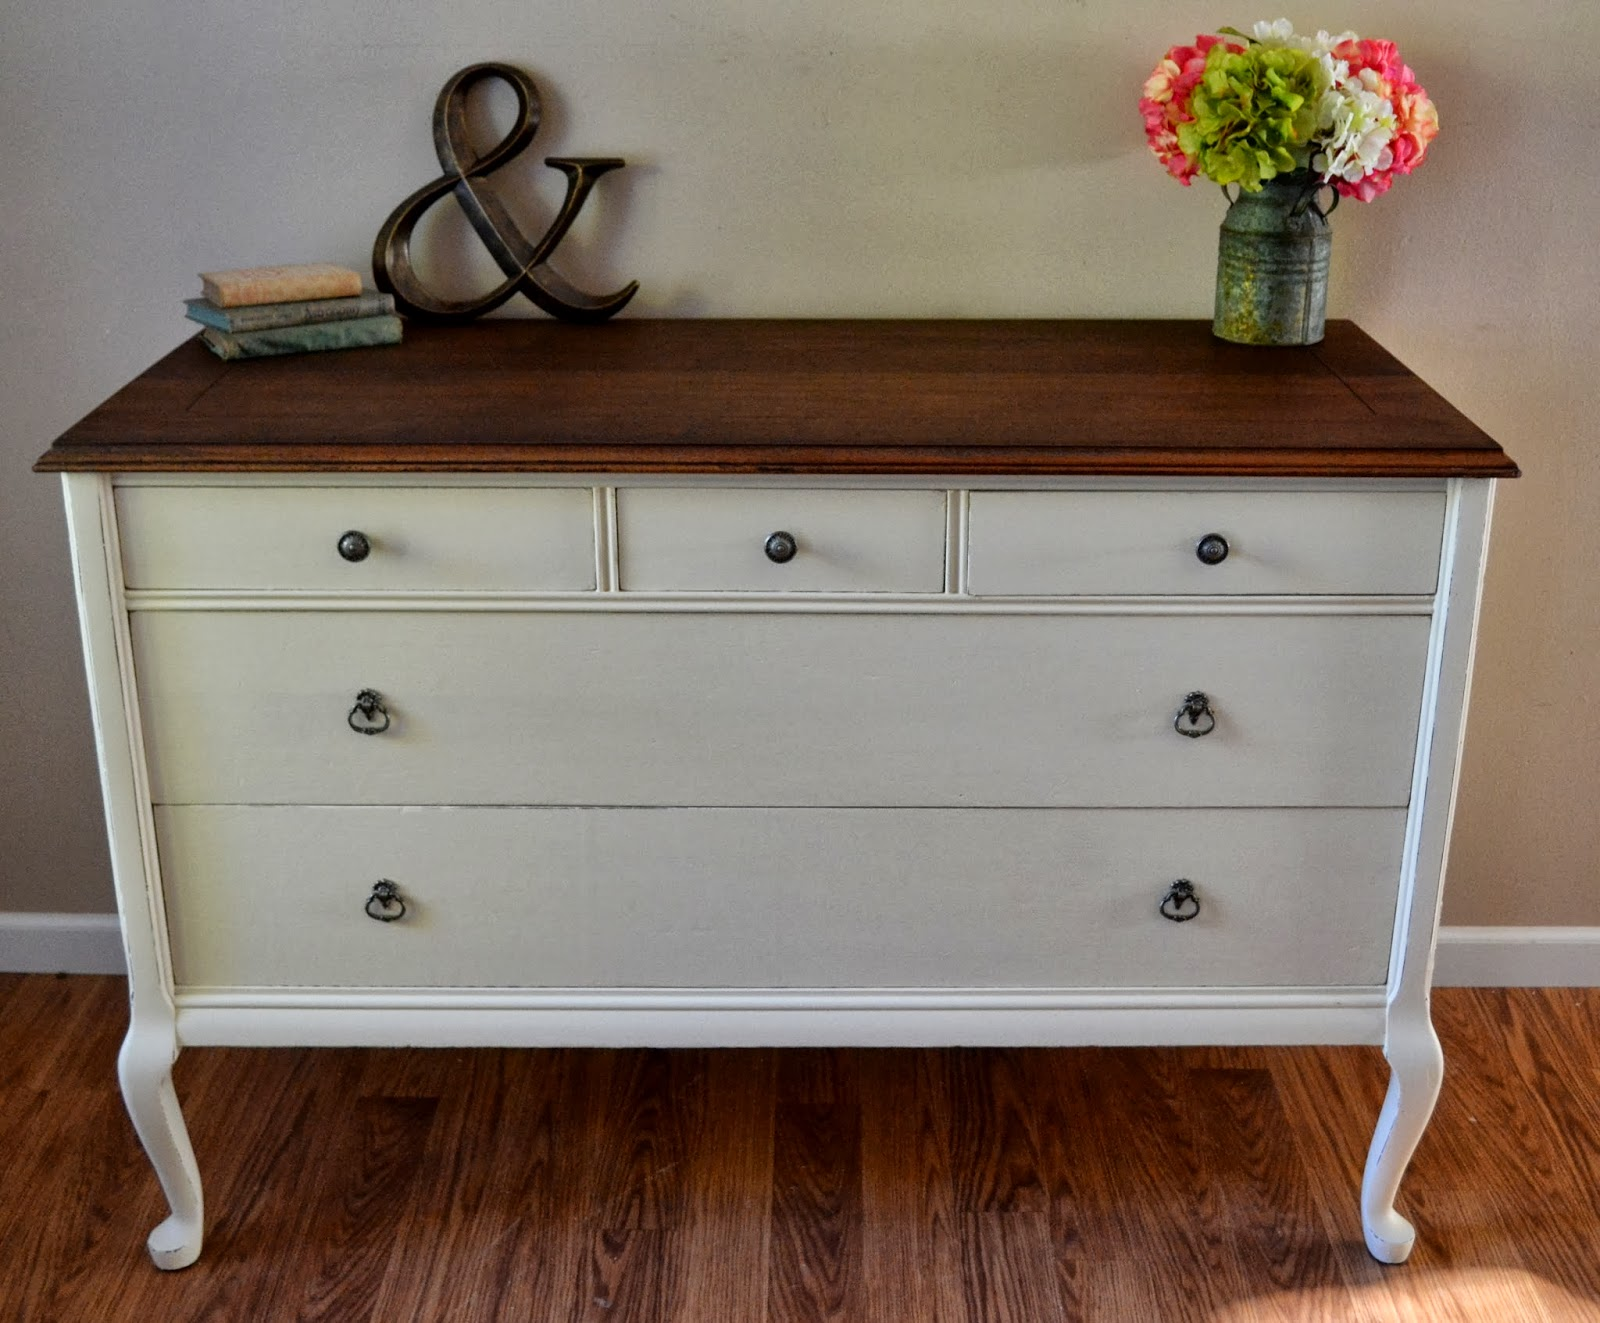 Helen nichole designs dresser in navajo white giveaway Best color to paint dresser